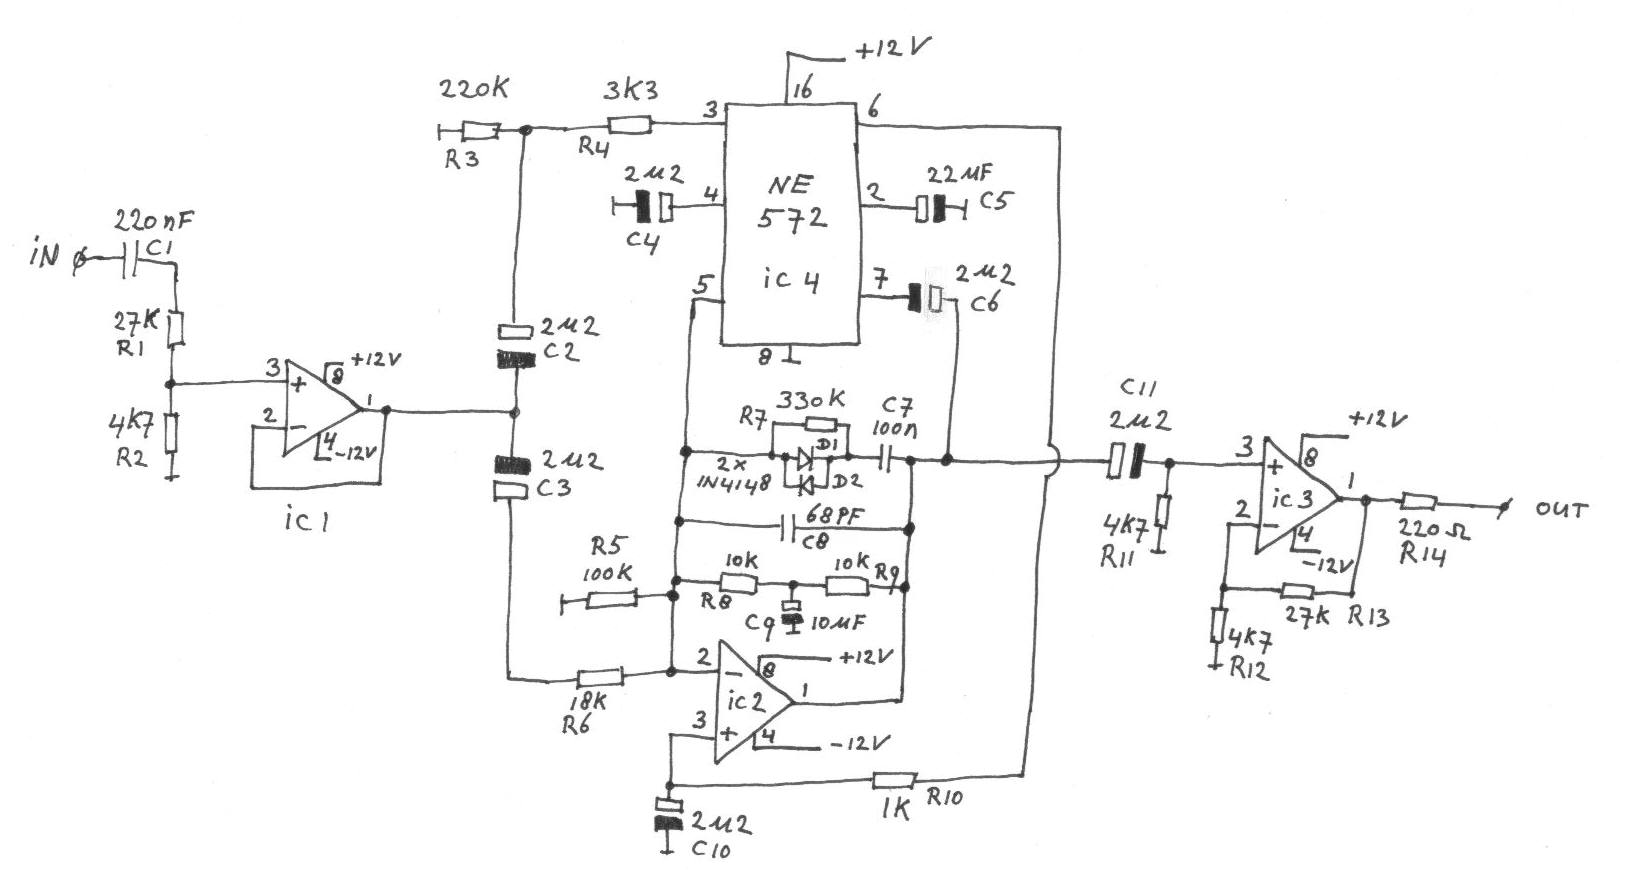 Audio Compressor Wiring Diagram Custom Hermetic Embraco Limiter Rh Dicks Website Eu Air 240v